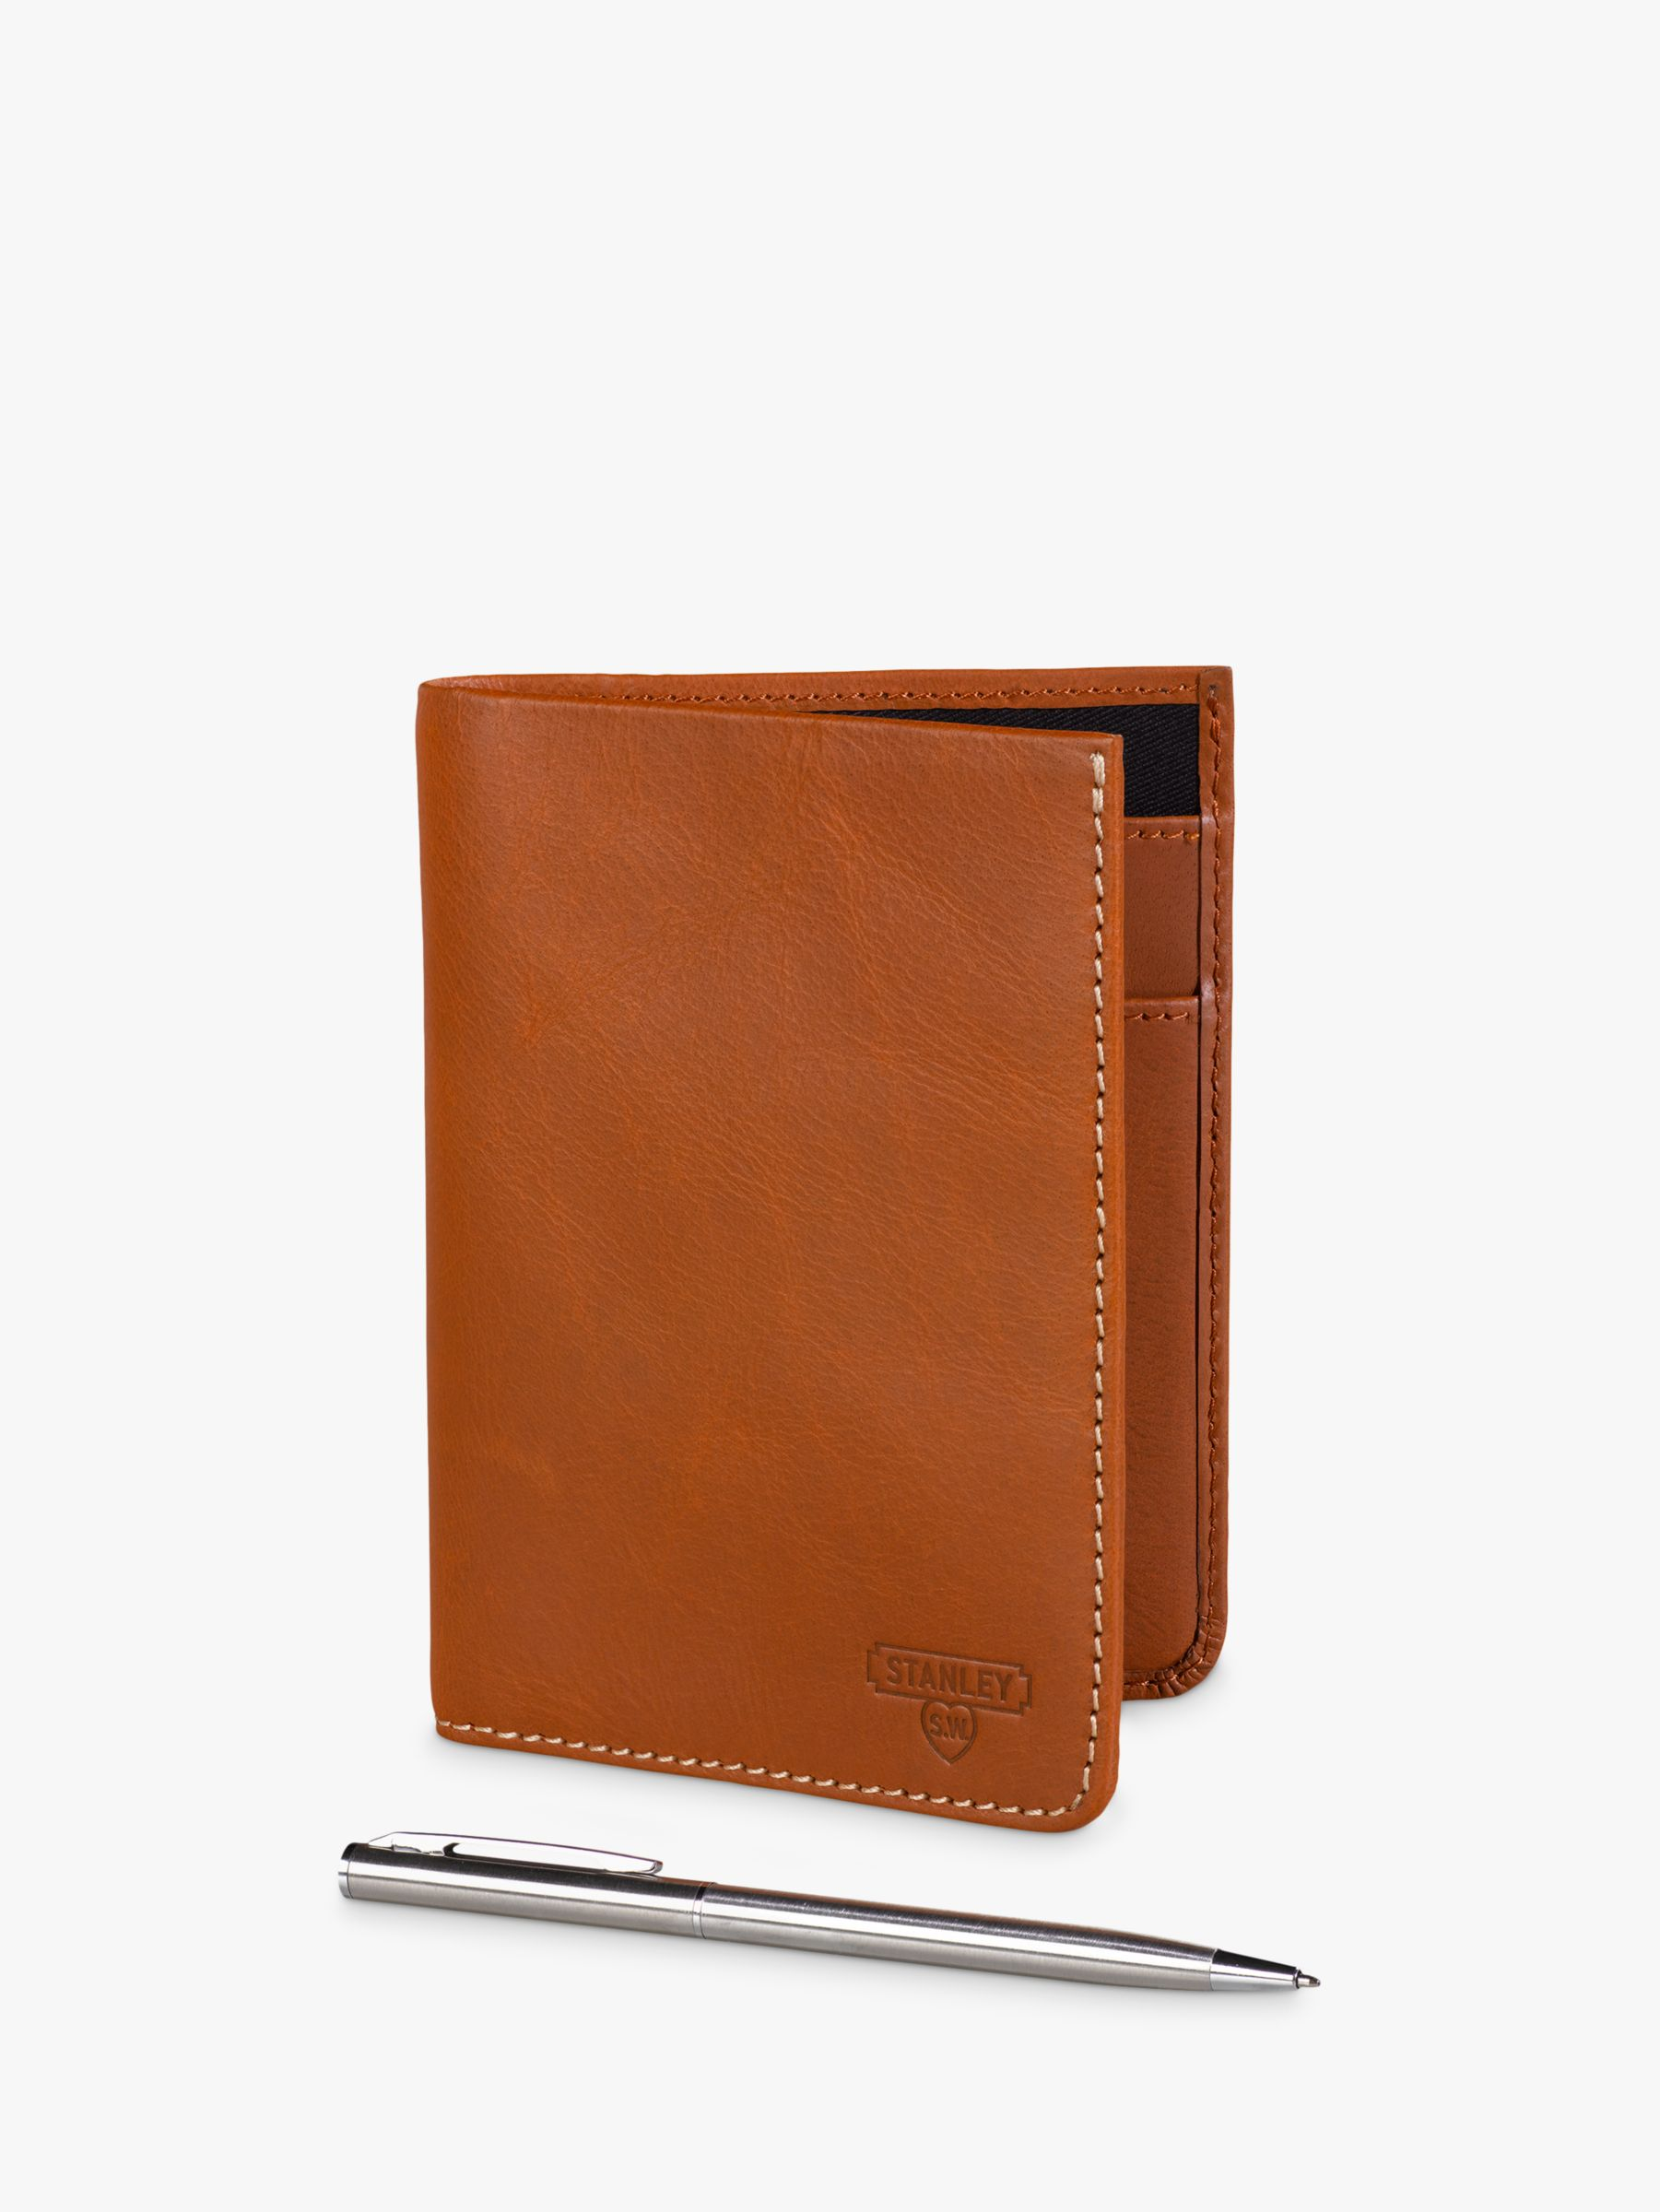 Stanley Stanley Leather Travel Wallet with Pen